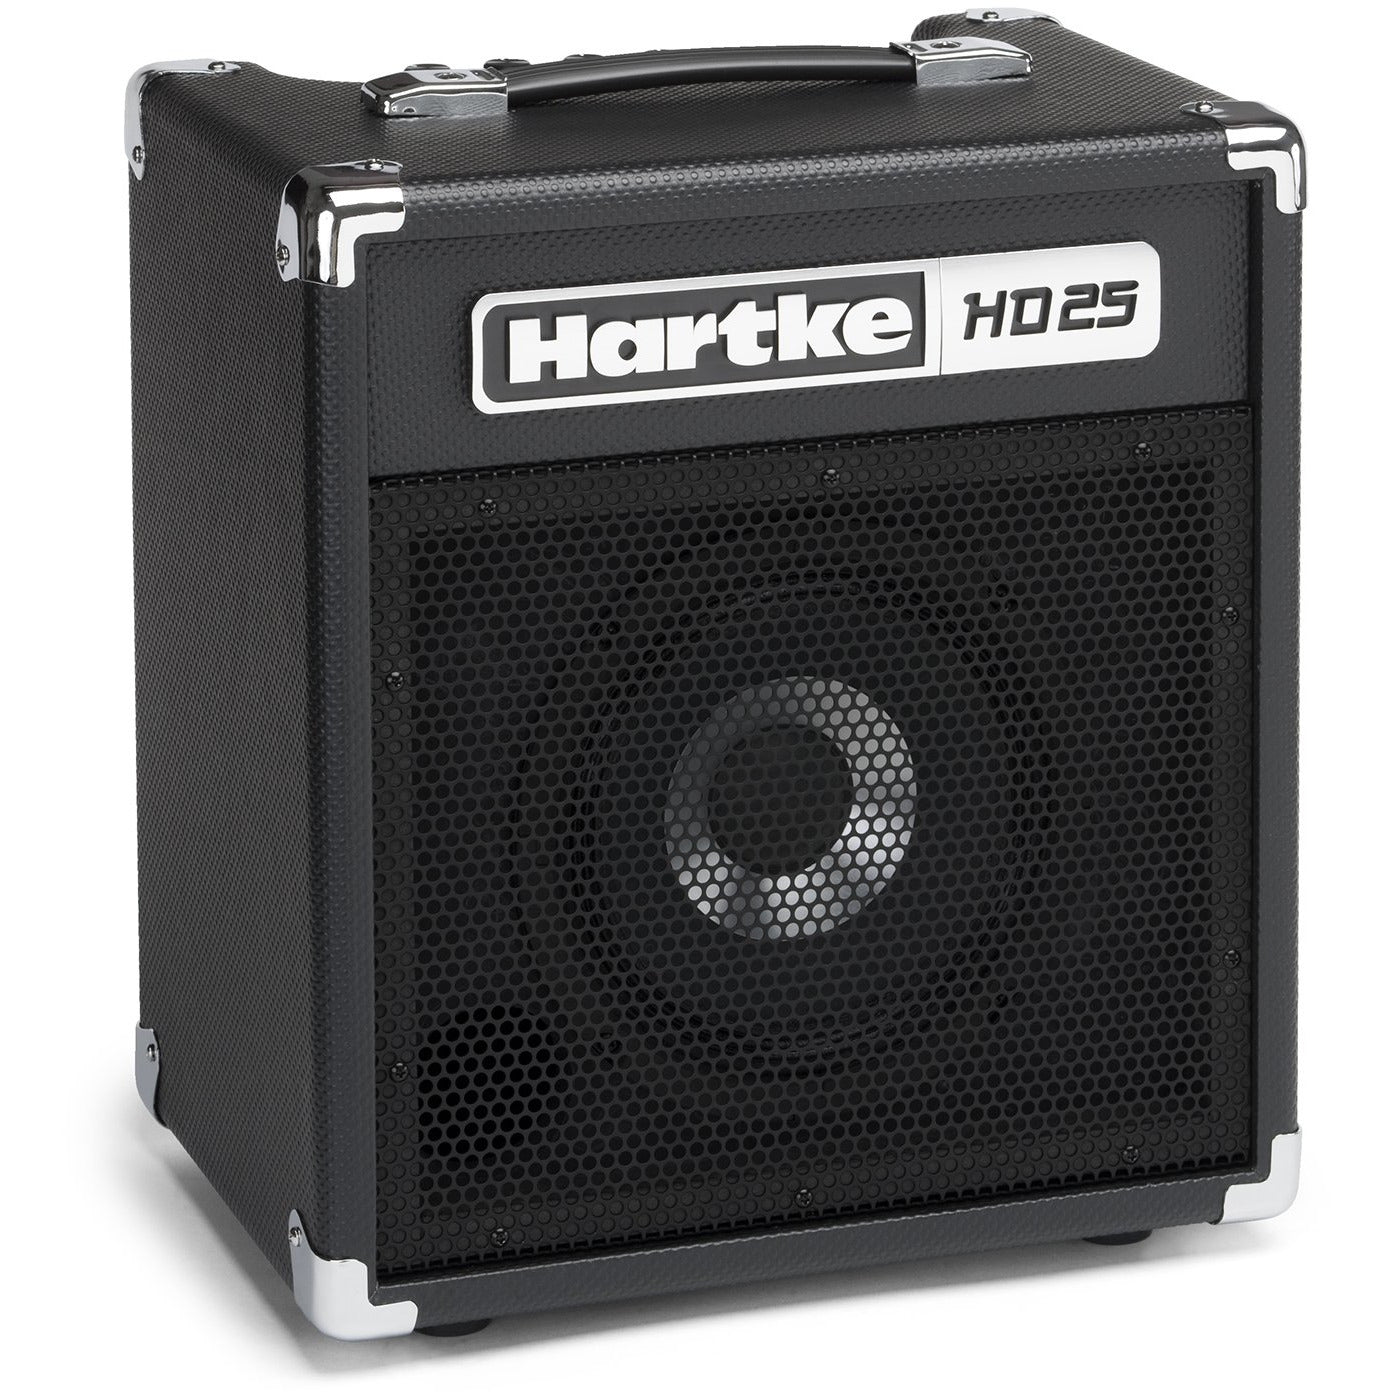 "Hartke HD25 25 watts,8"" HyDrive paper and aluminum cone driver"